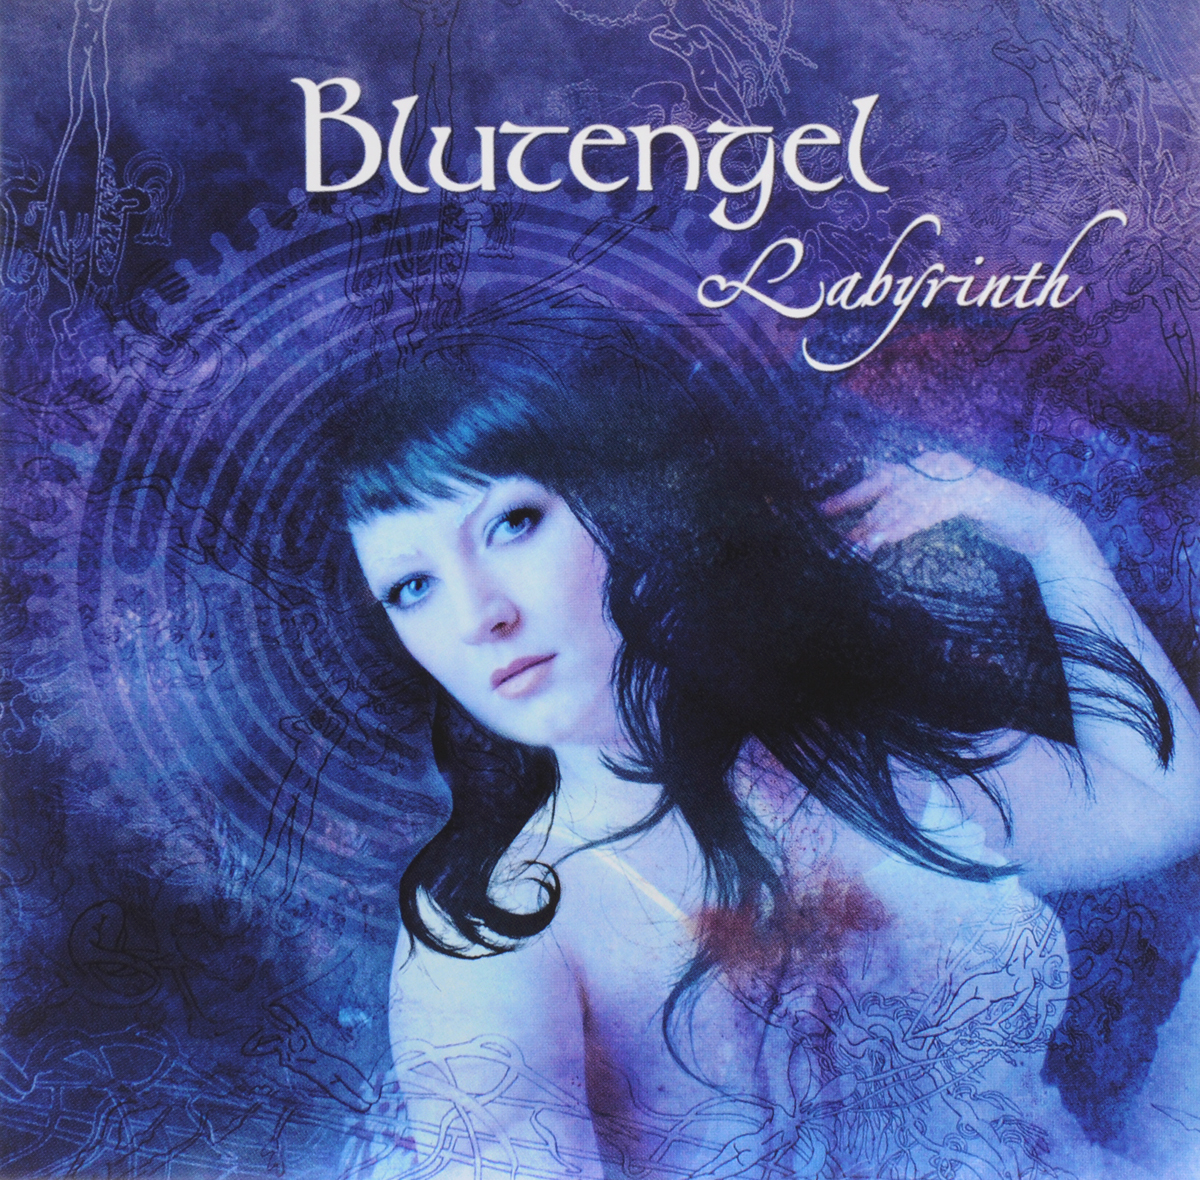 Blutengel. Labyrinth